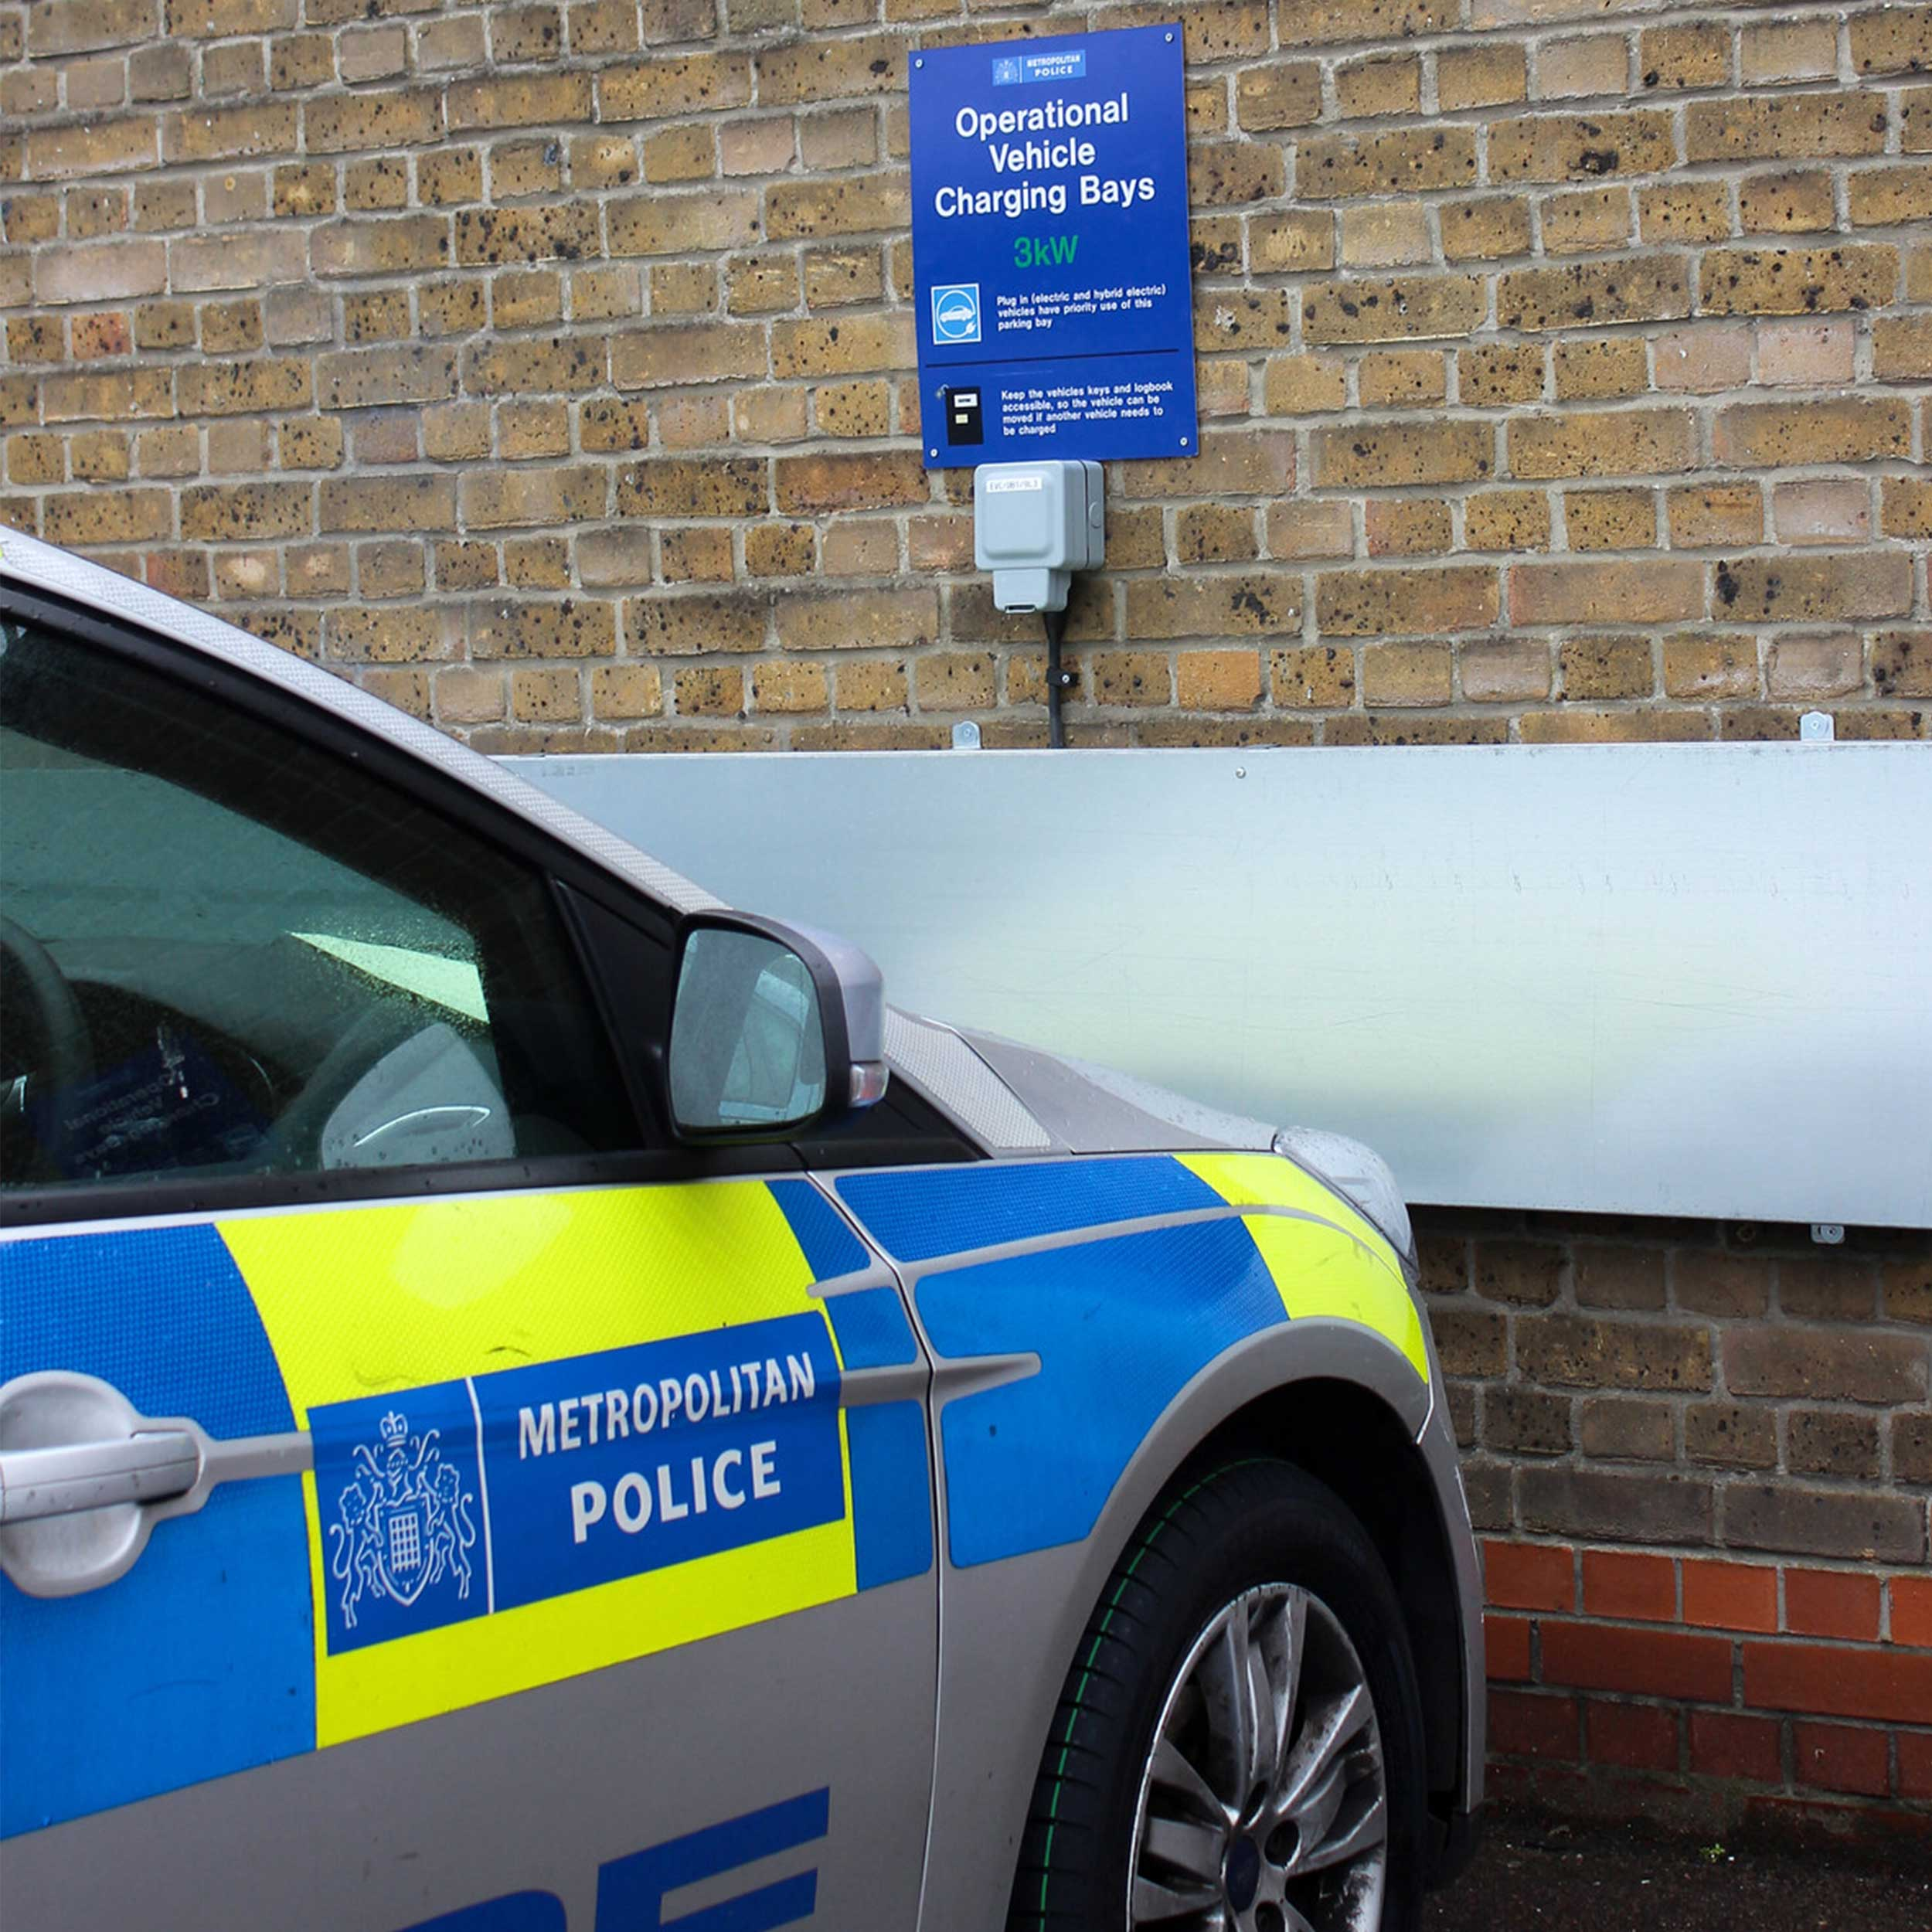 MET-Police-car-charging-in-station-near a brick wall